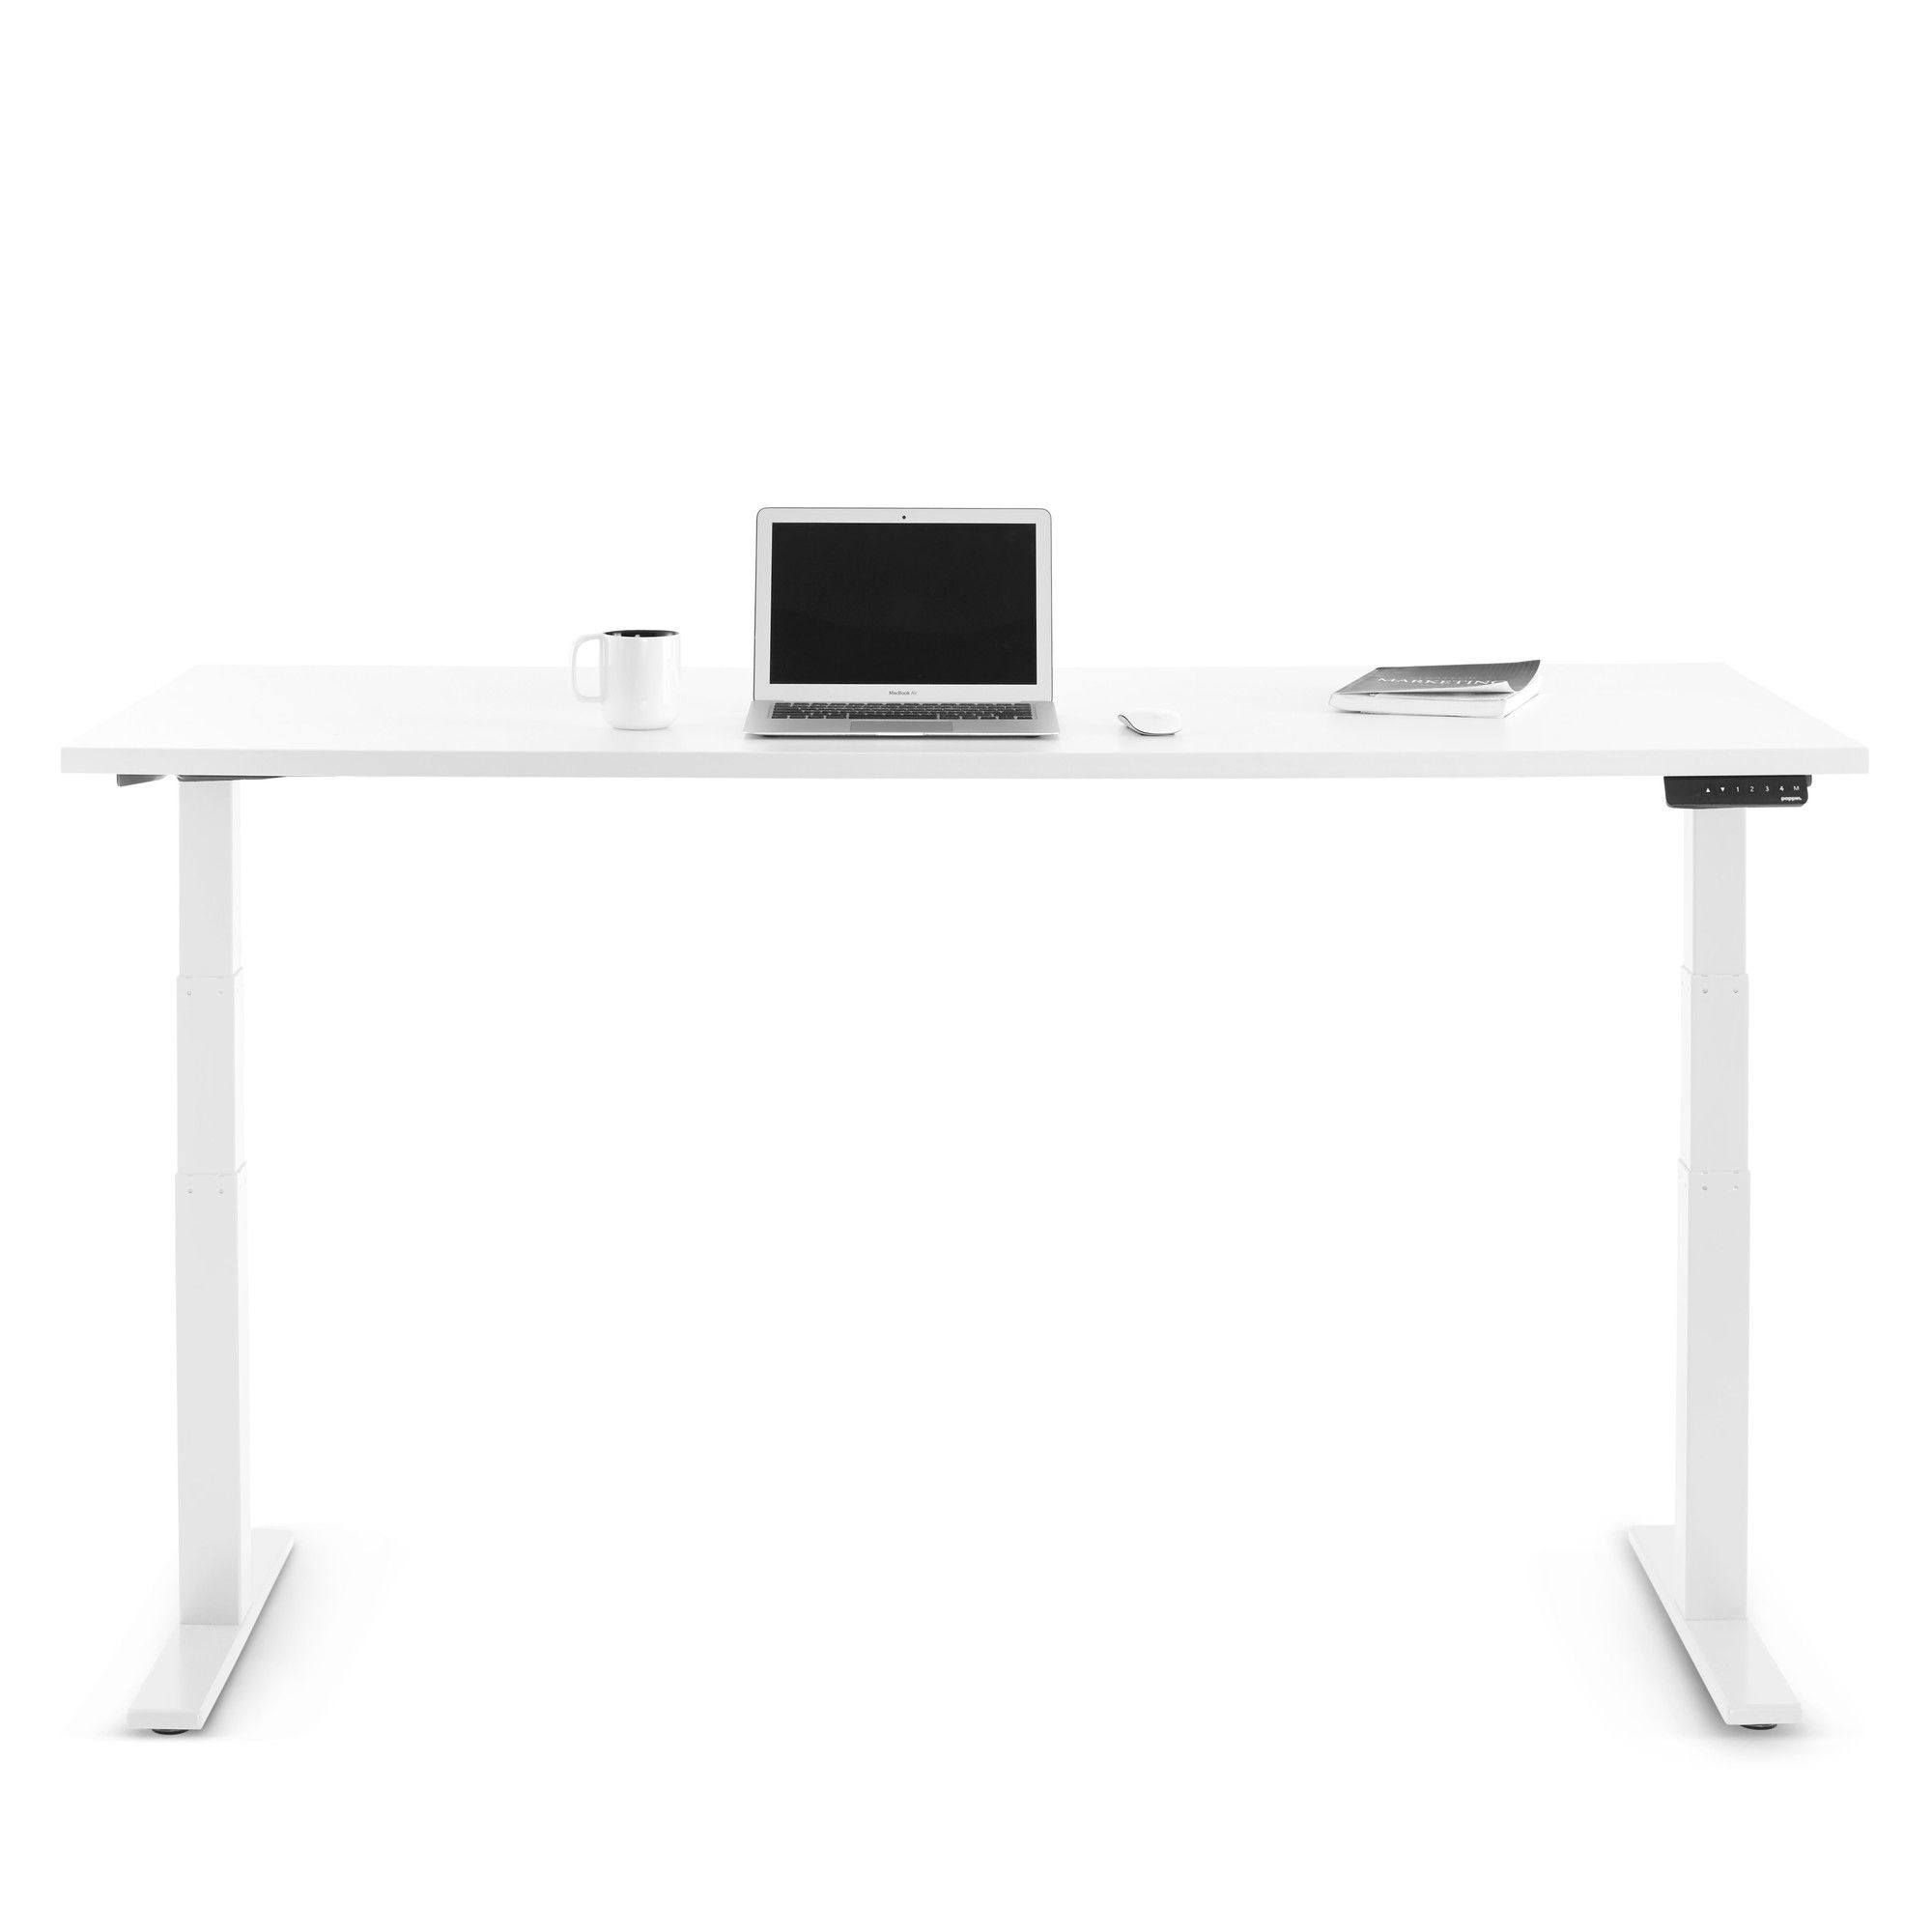 Series L Adjustable Height Single Desk White Legs Adjustable Height Desks Adjustable Height Desk Single Desk Adjustable Height Standing Desk